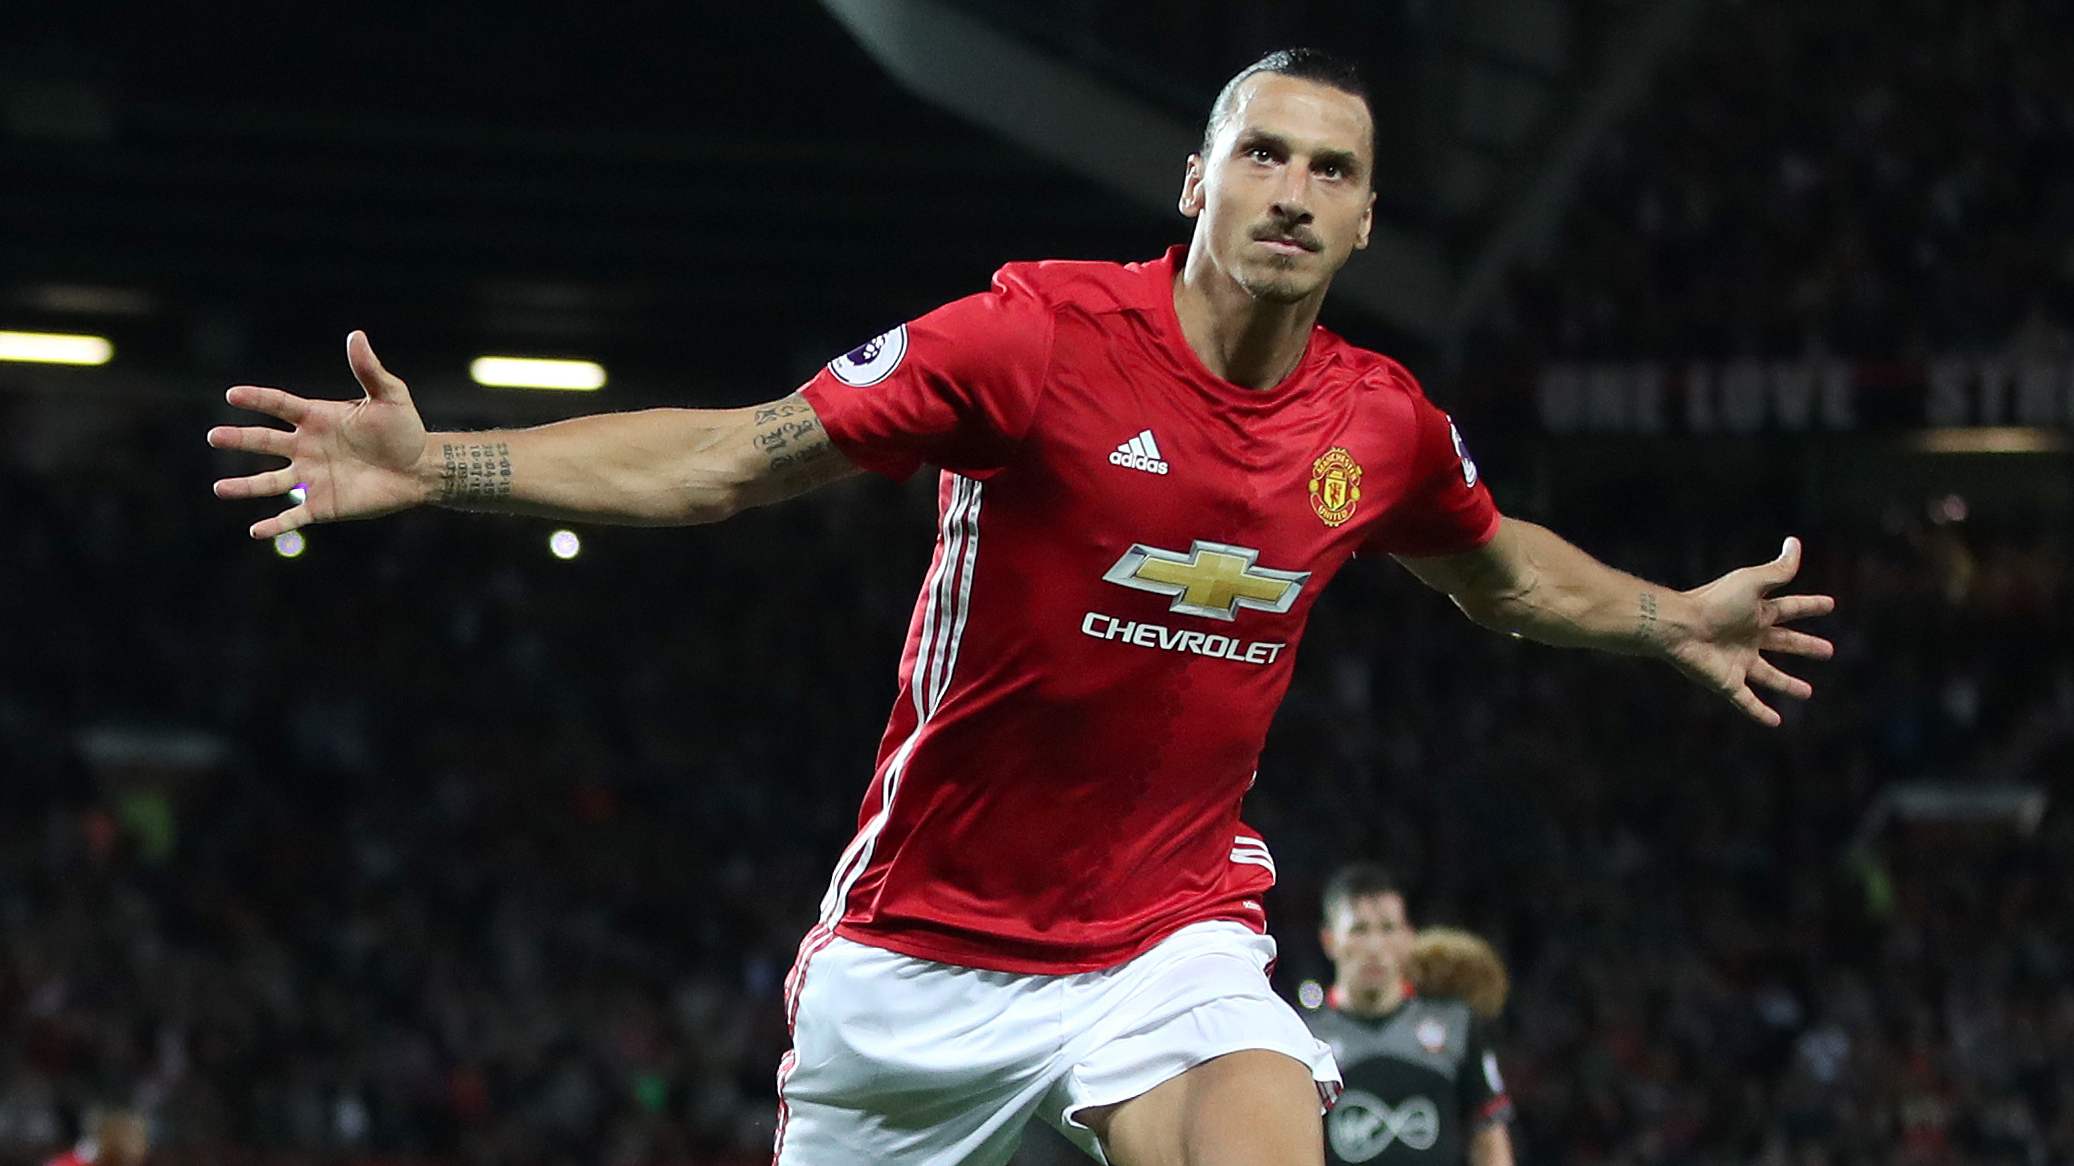 Great things come to an end - Ibrahimovic confirms Man Utd departure